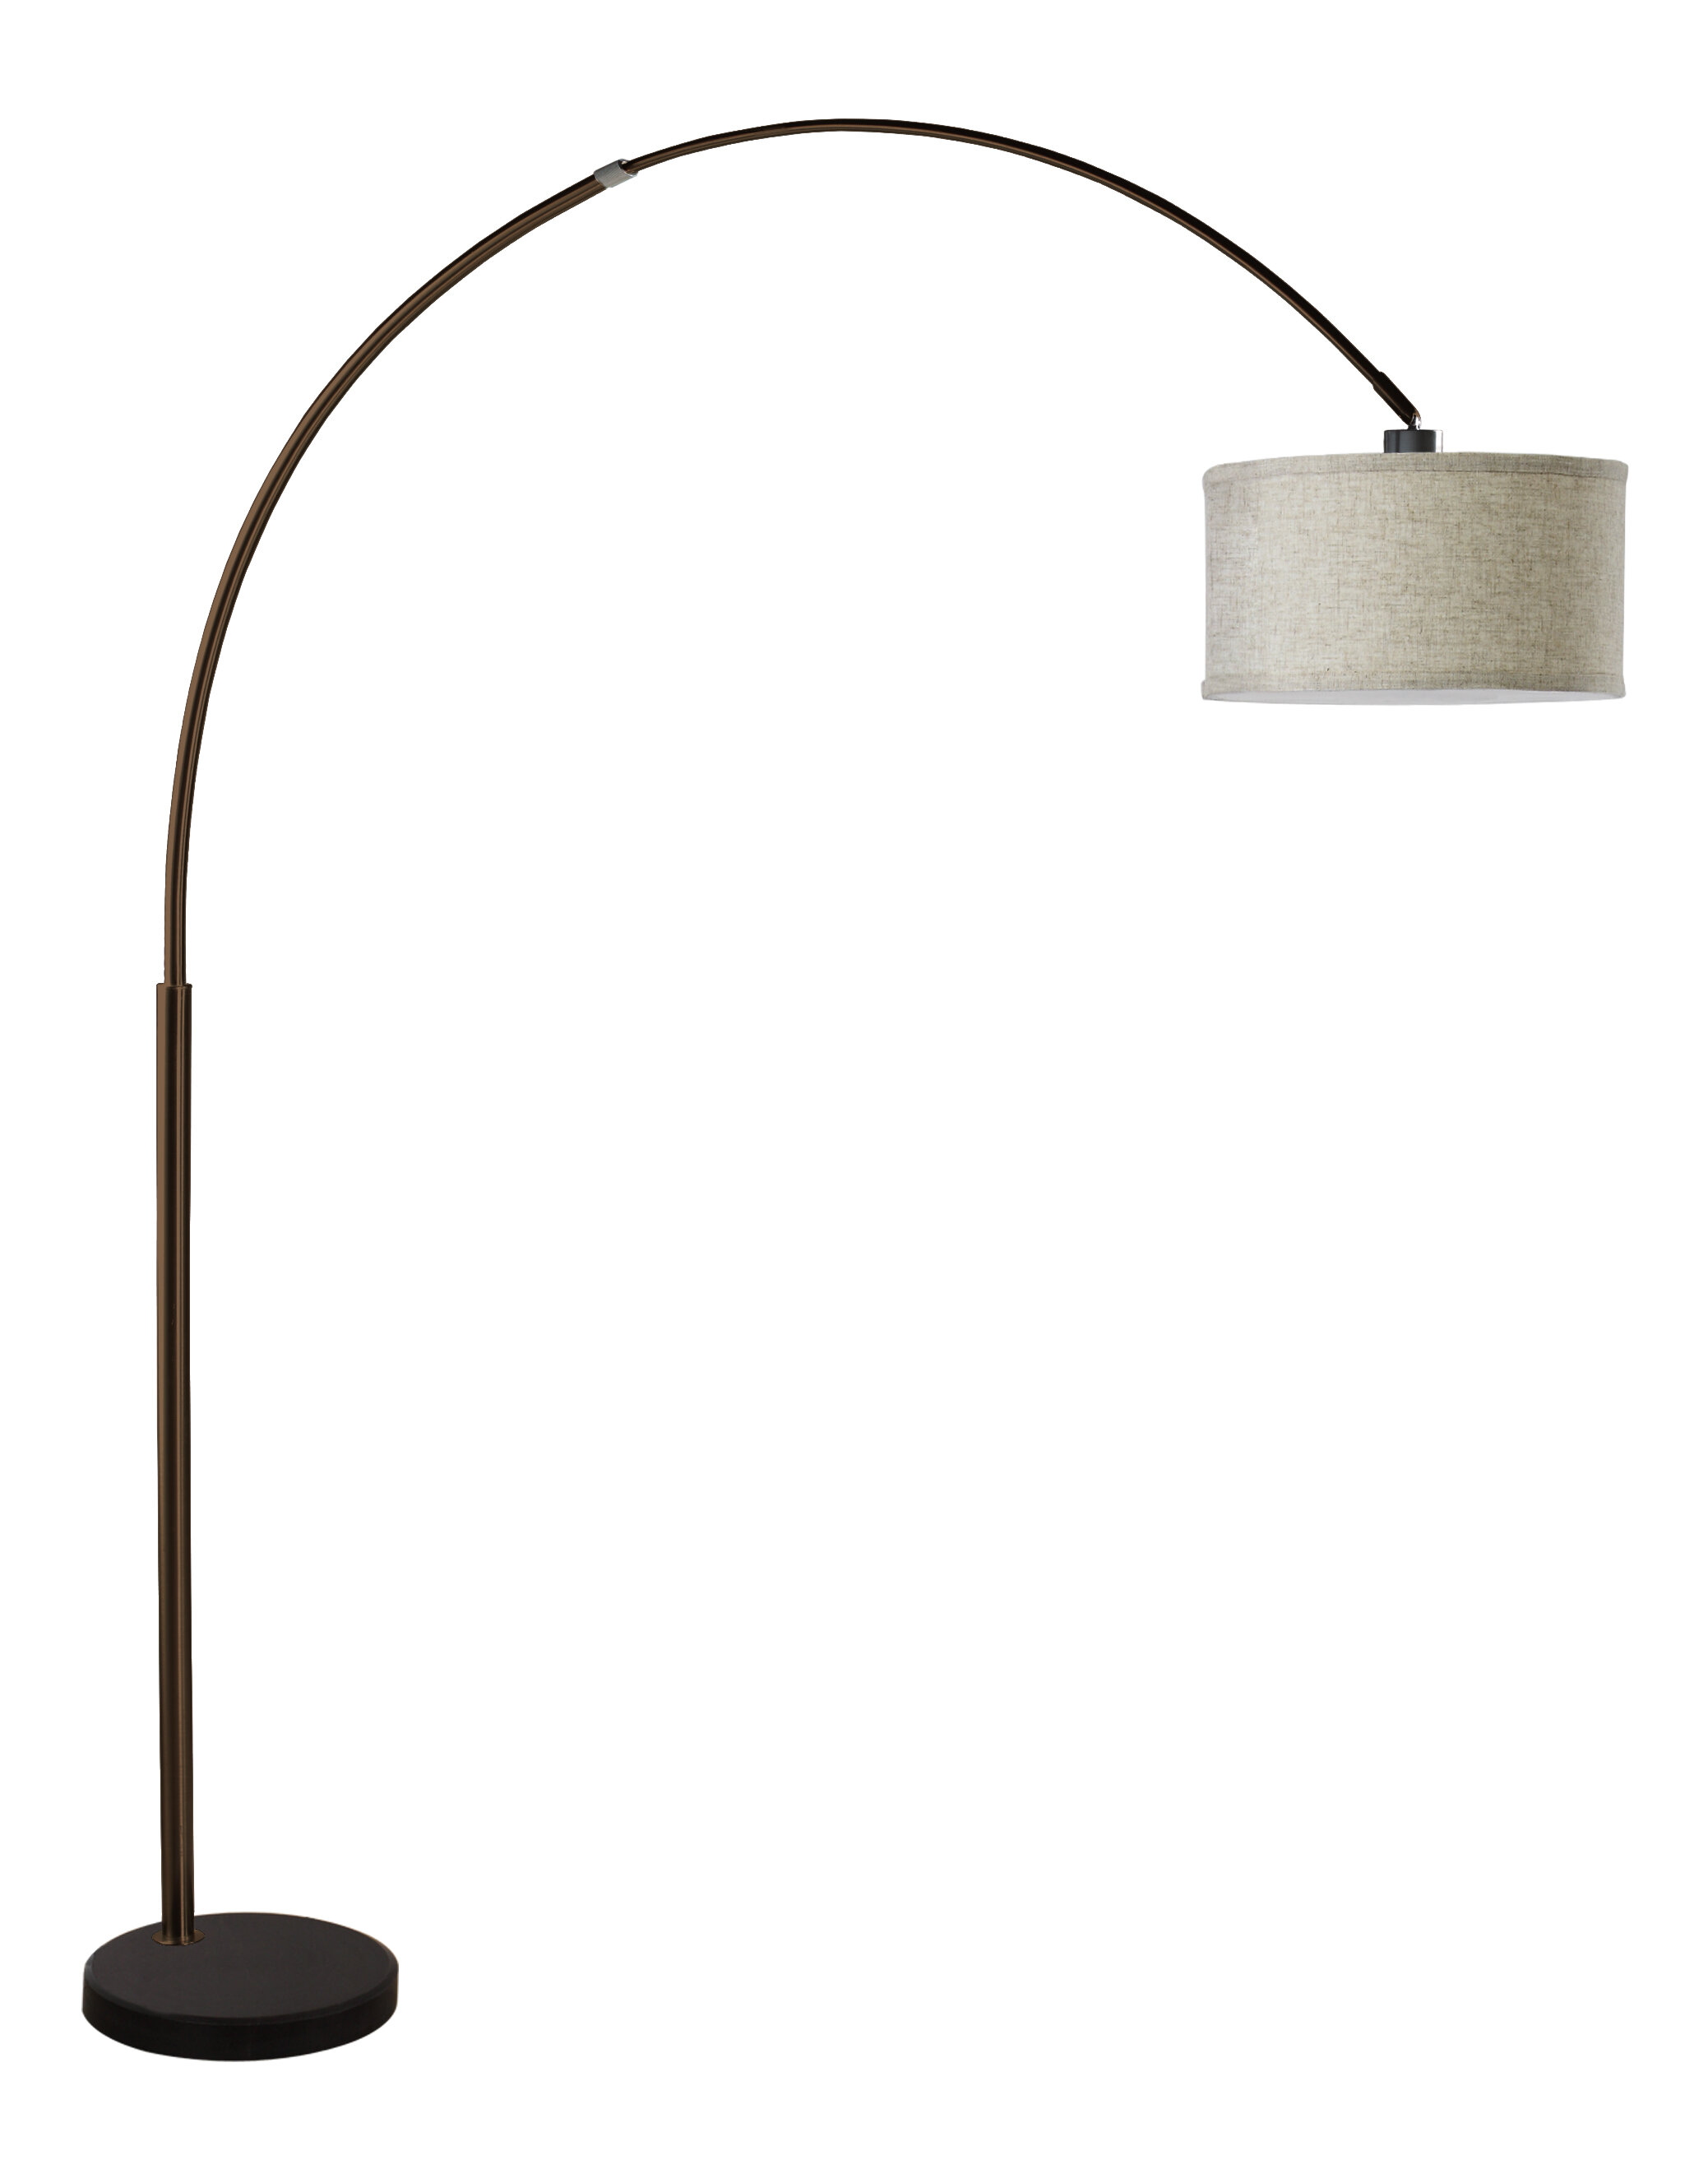 roth eberline floor shade lighting com metal switch ceiling lowes allen reading shop with foot bronze in at pl fans shades lamps lamp